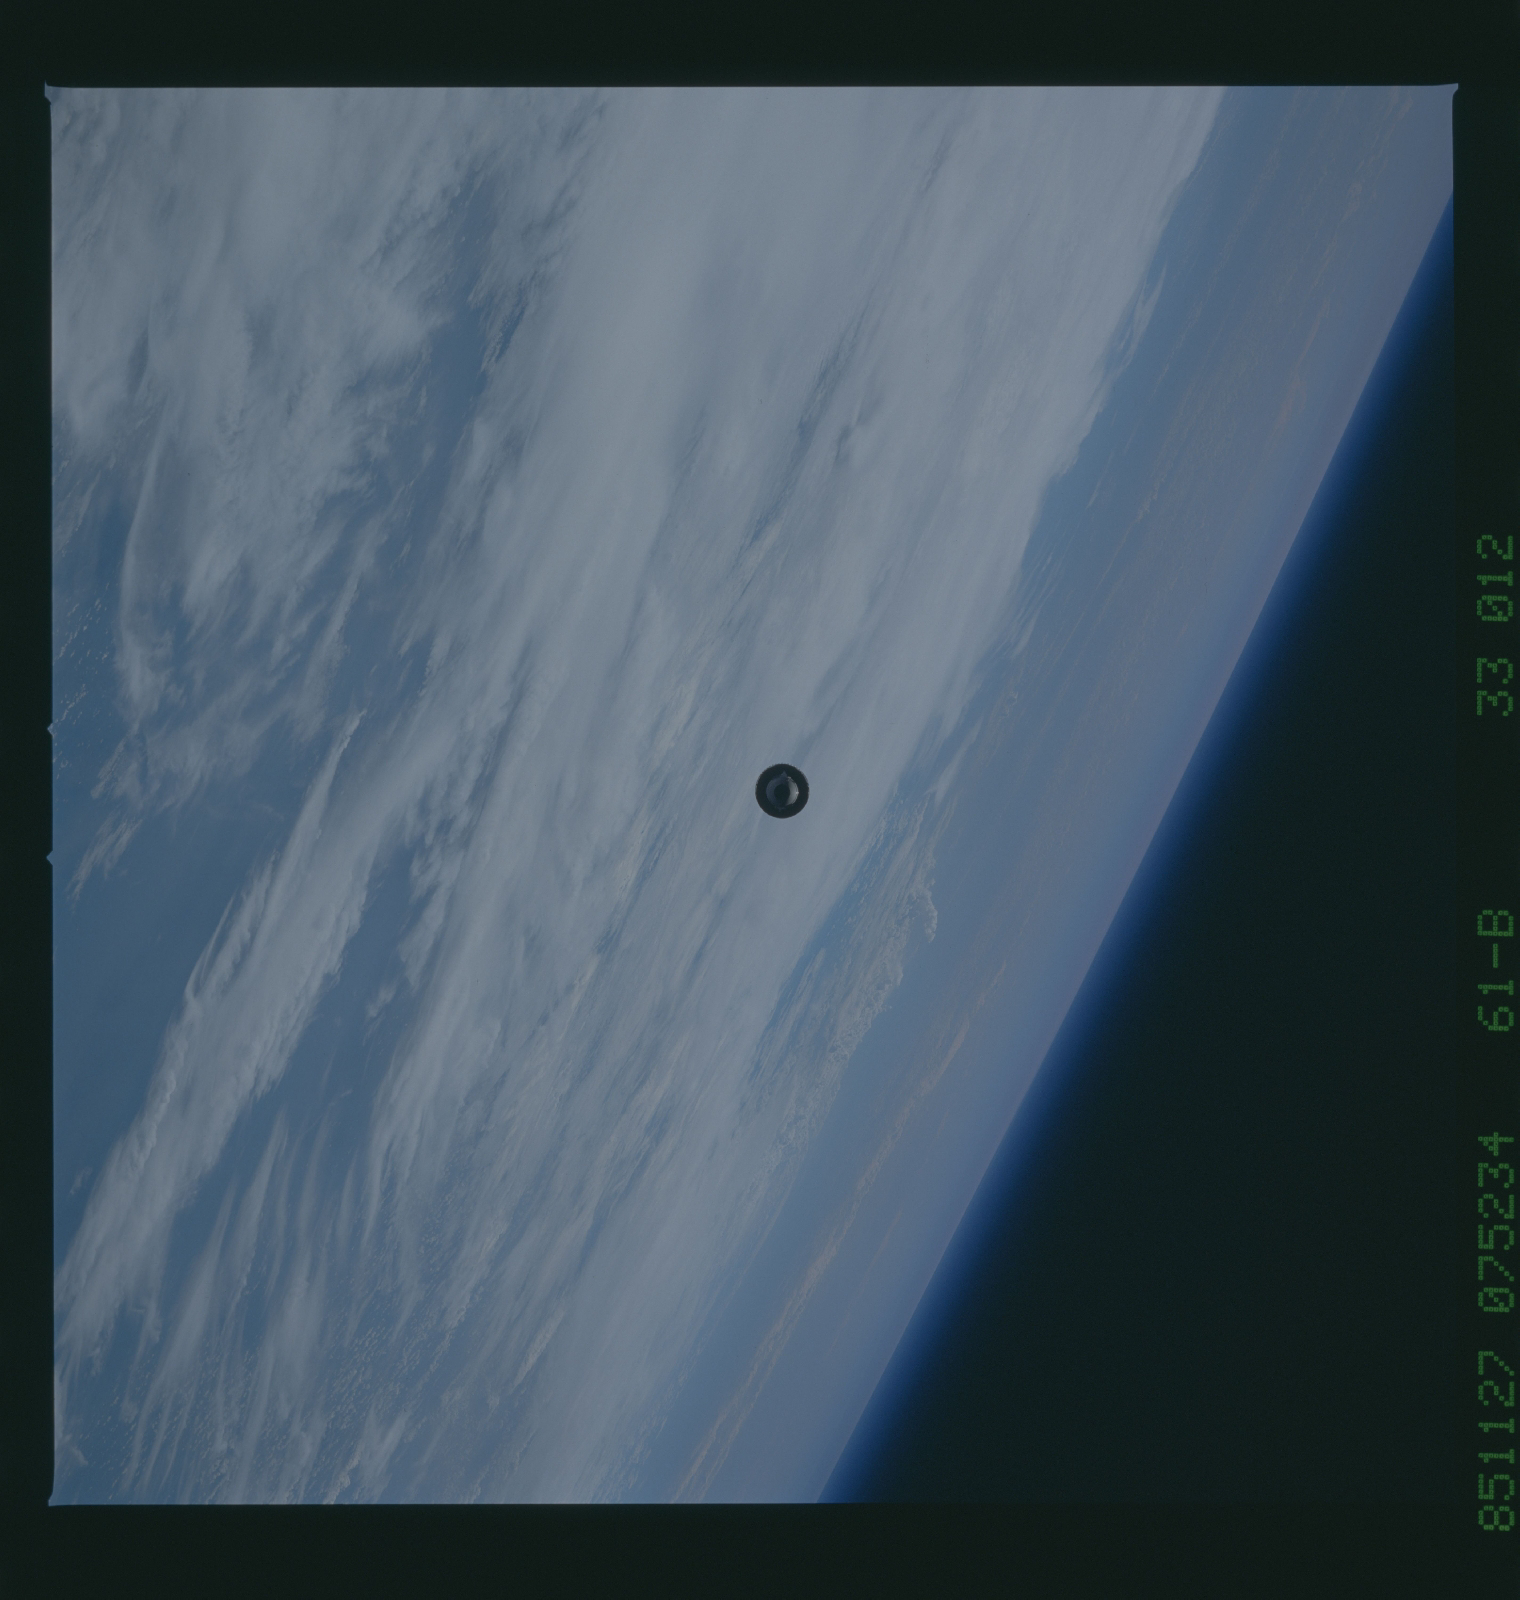 The-image-shows-the-UFO-satellite-as-it-is-in-space.